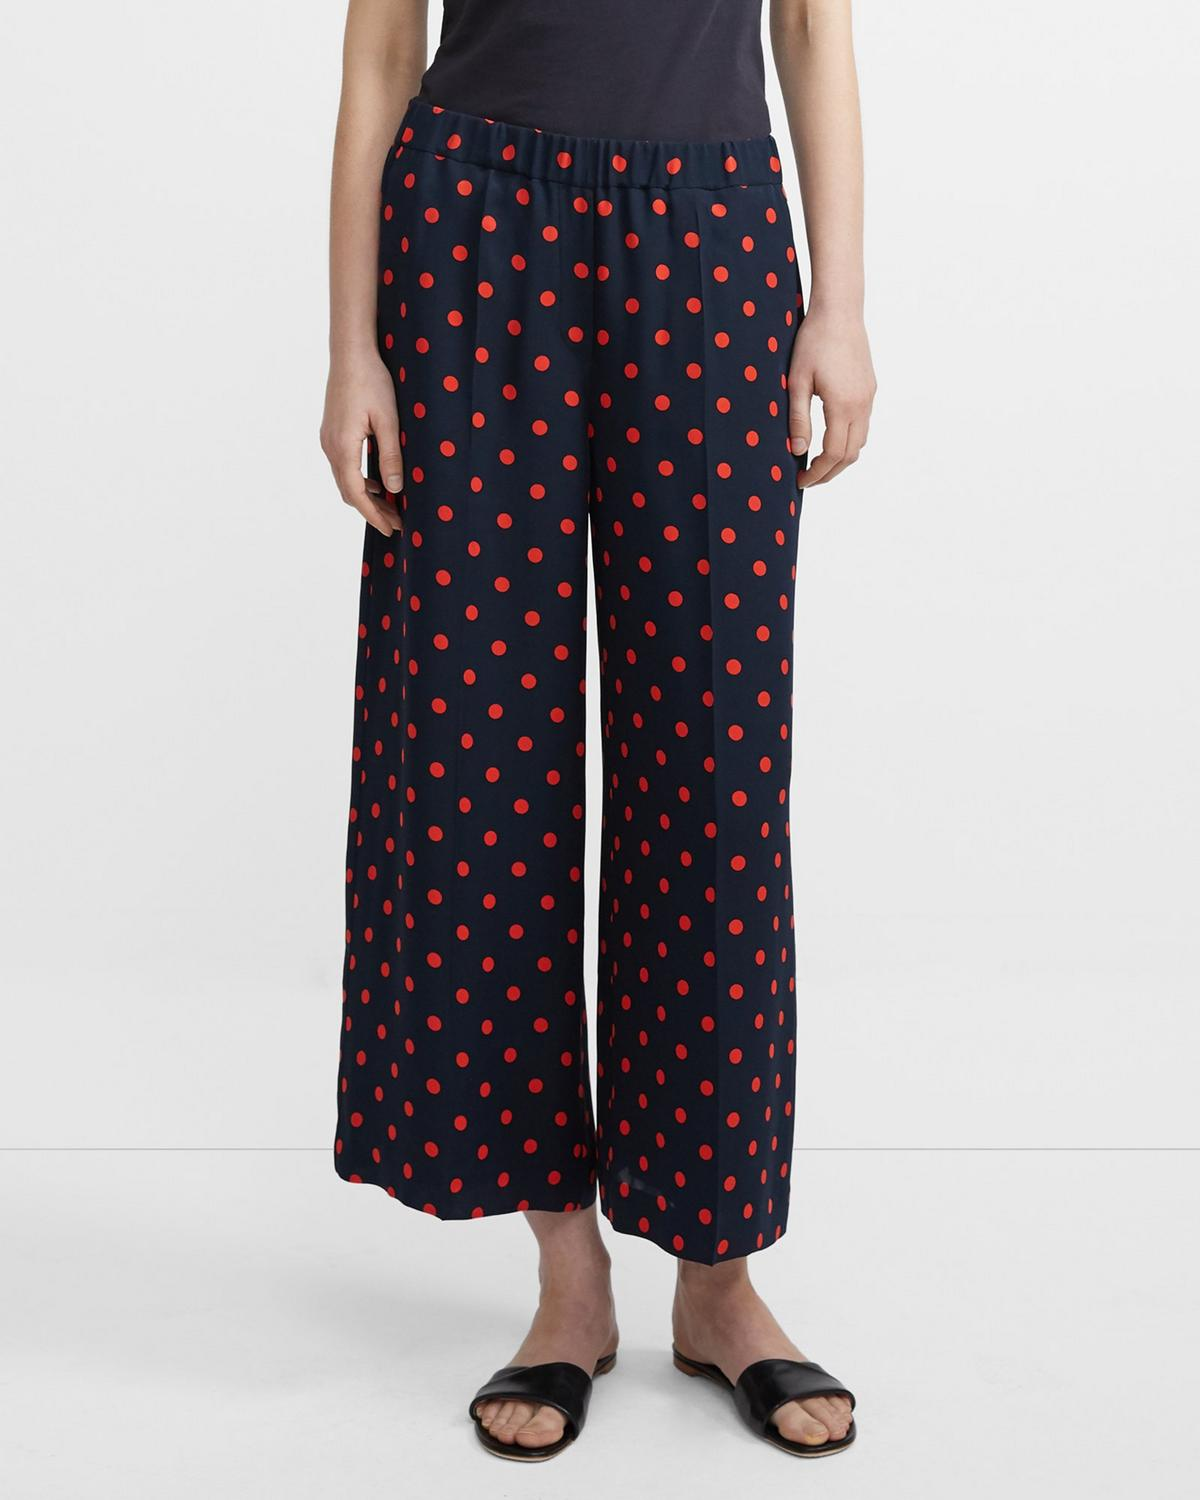 Wide Leg Pant in Neon Polka Dot Silk